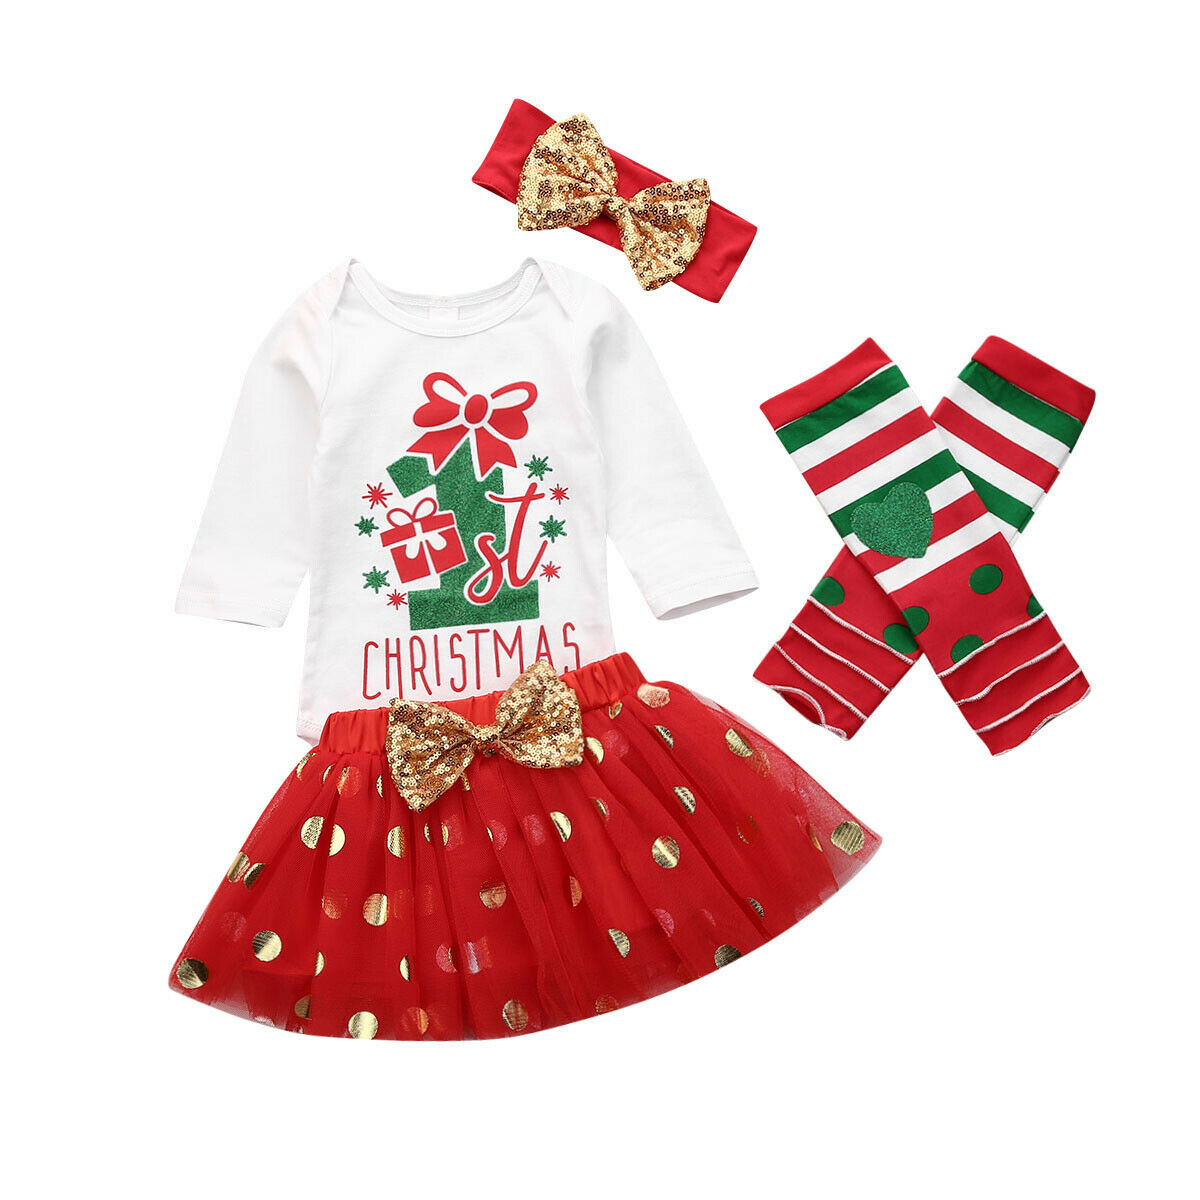 Cute Bowknot/Headband Skirt Set My First Christmas Baby Girl Clothes Red/Tutu Sequins Tulle Princess Dress